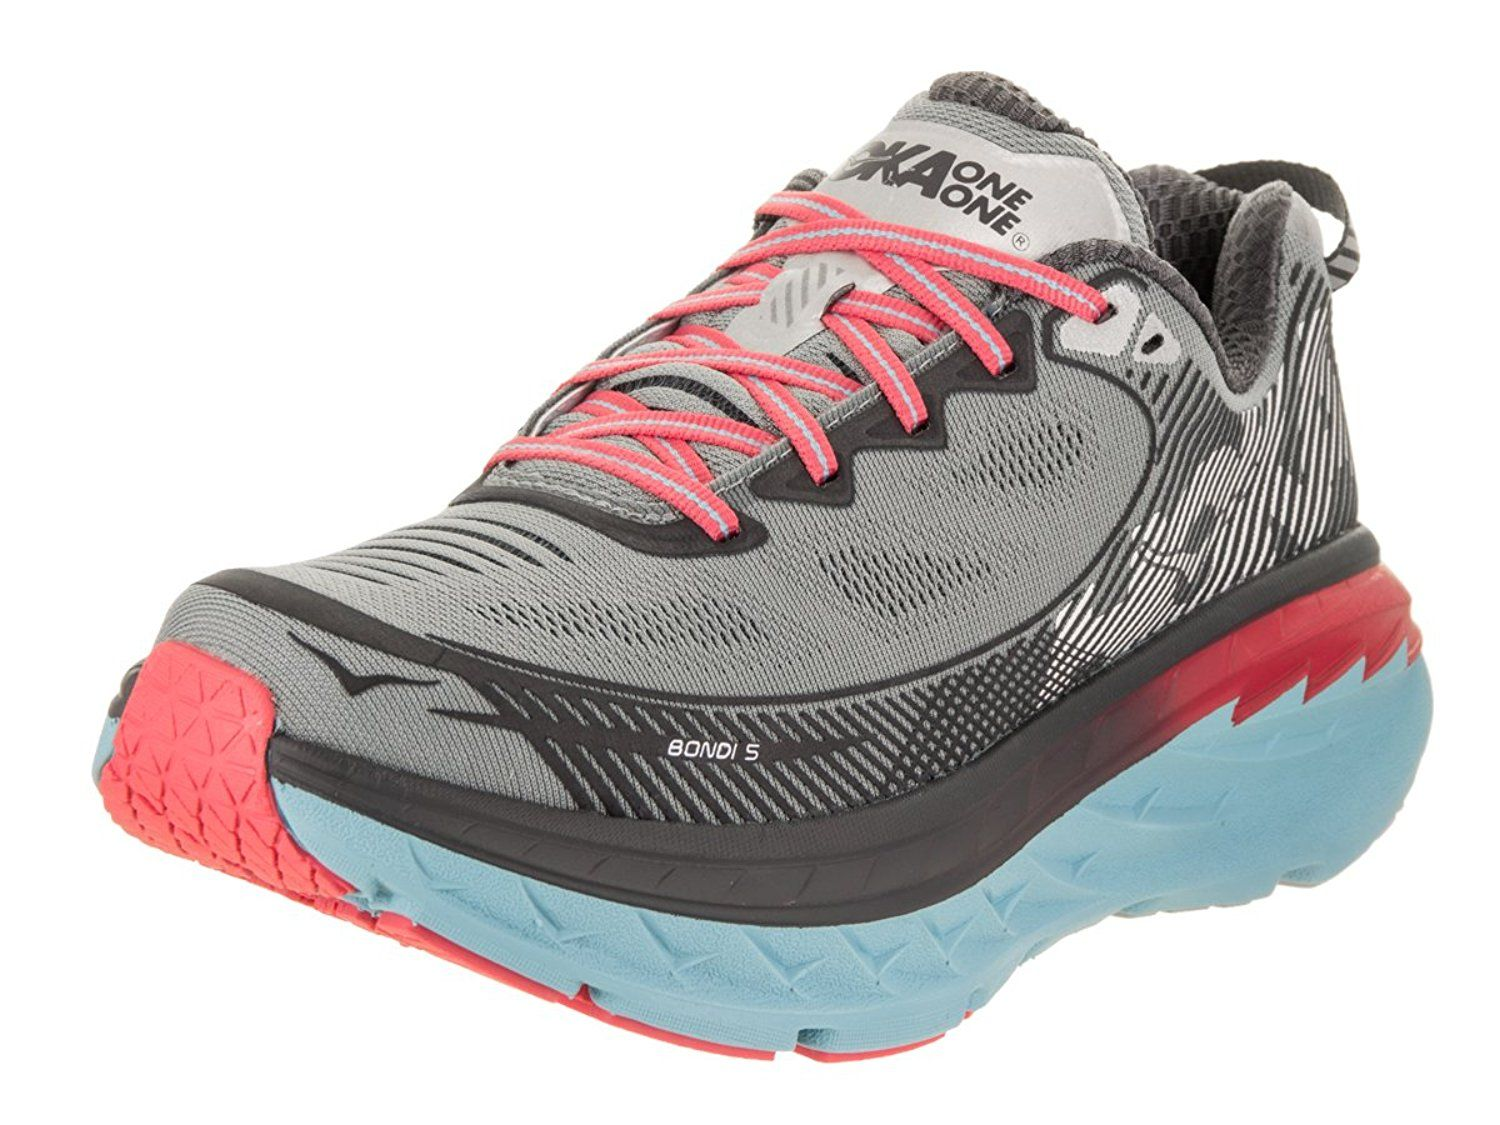 8a8c044bcddcc Amazon.com | Hoka One One Women's Bondi 5 Shoe (9) | Road Running ...